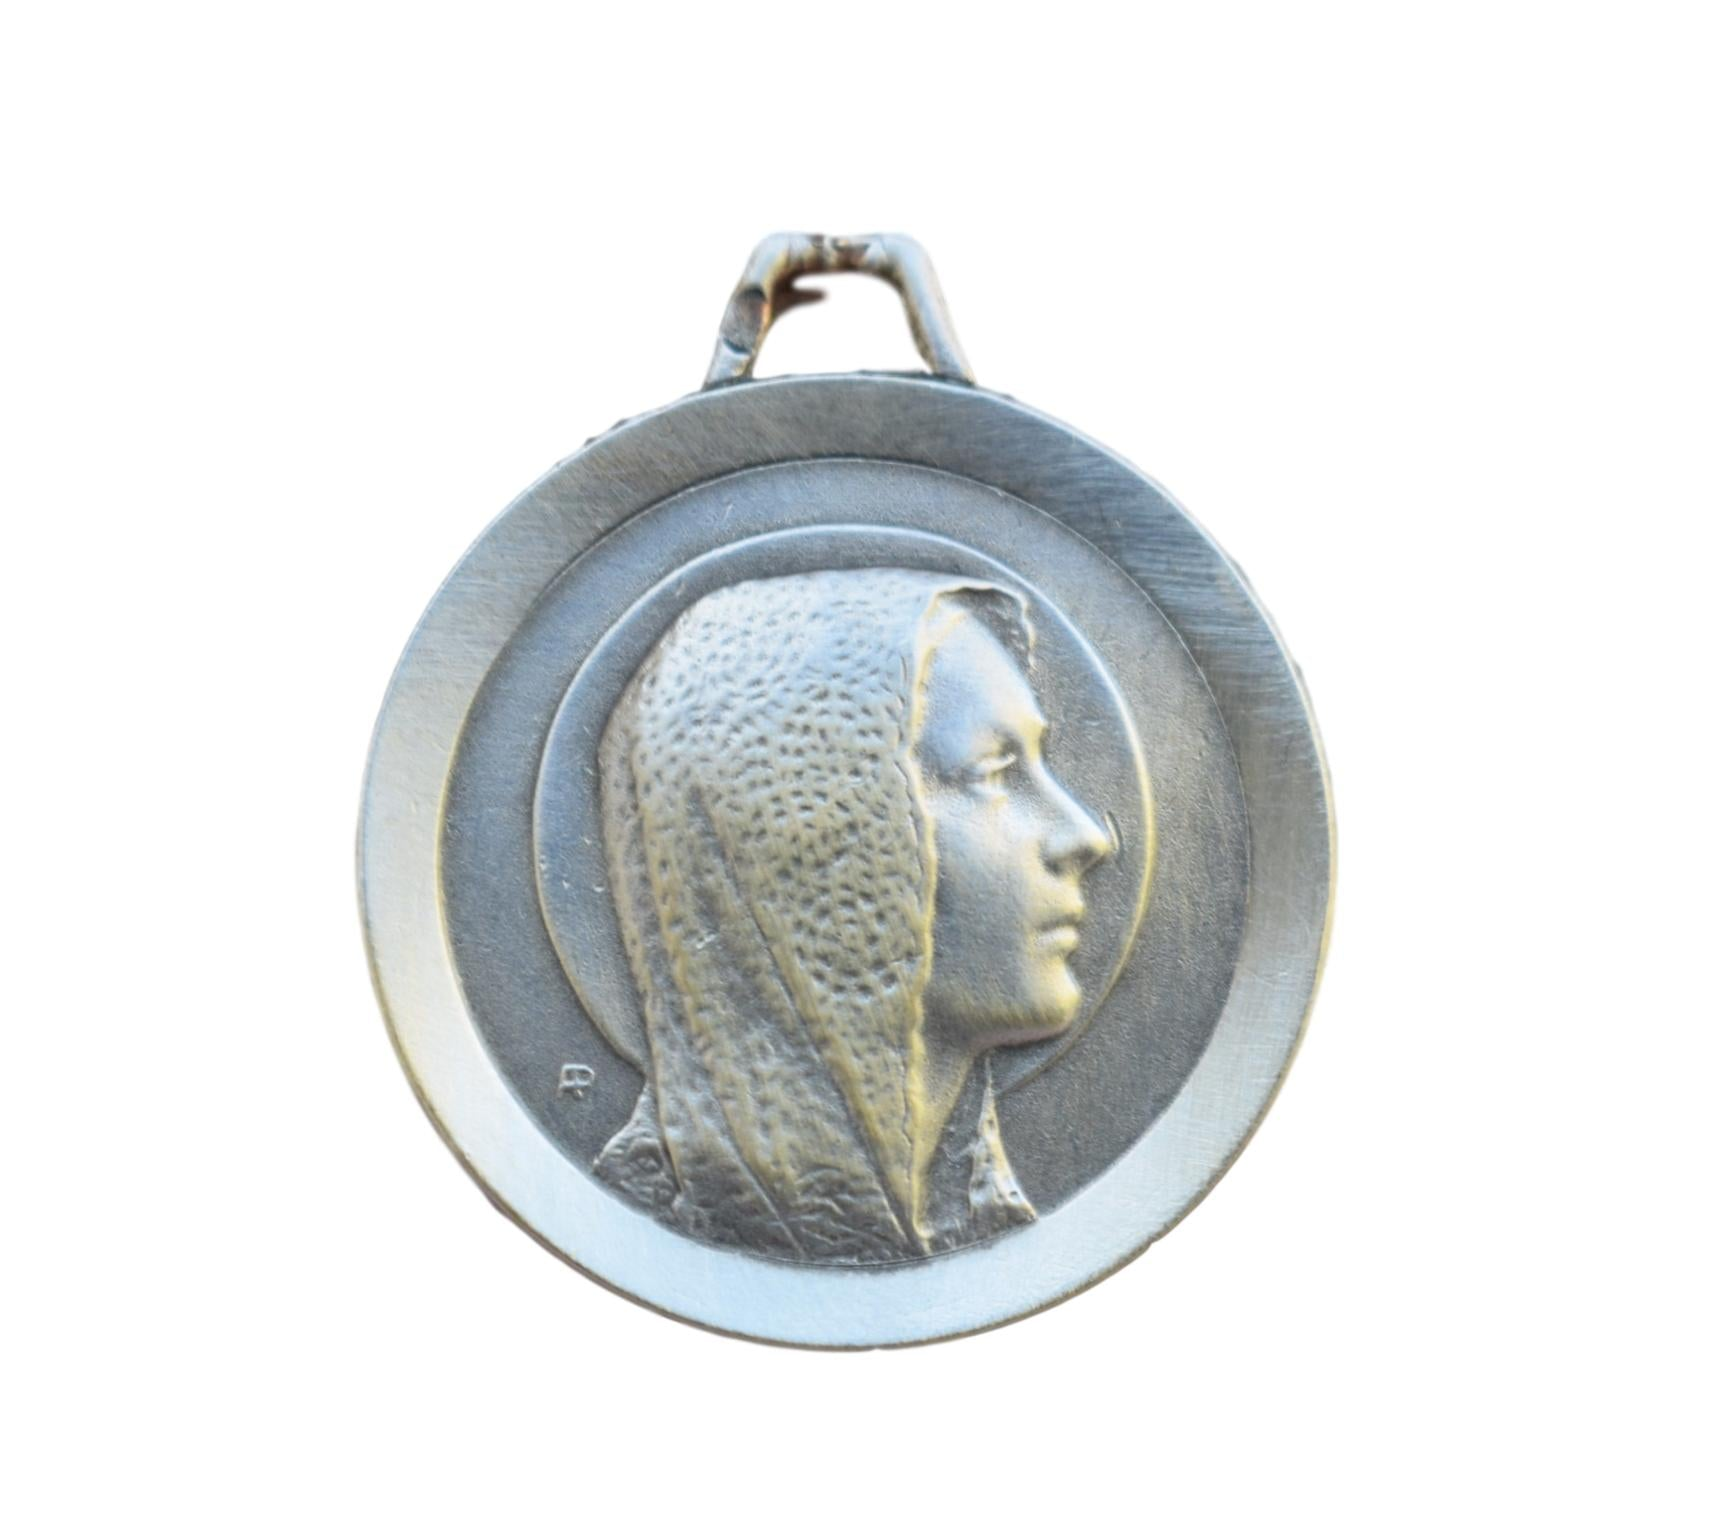 French Antique Sterling Silver Mary Medal - Fine Virgin Mary Portrait Our Lady Pendant - Silver Charm - Lourdes Souvenir